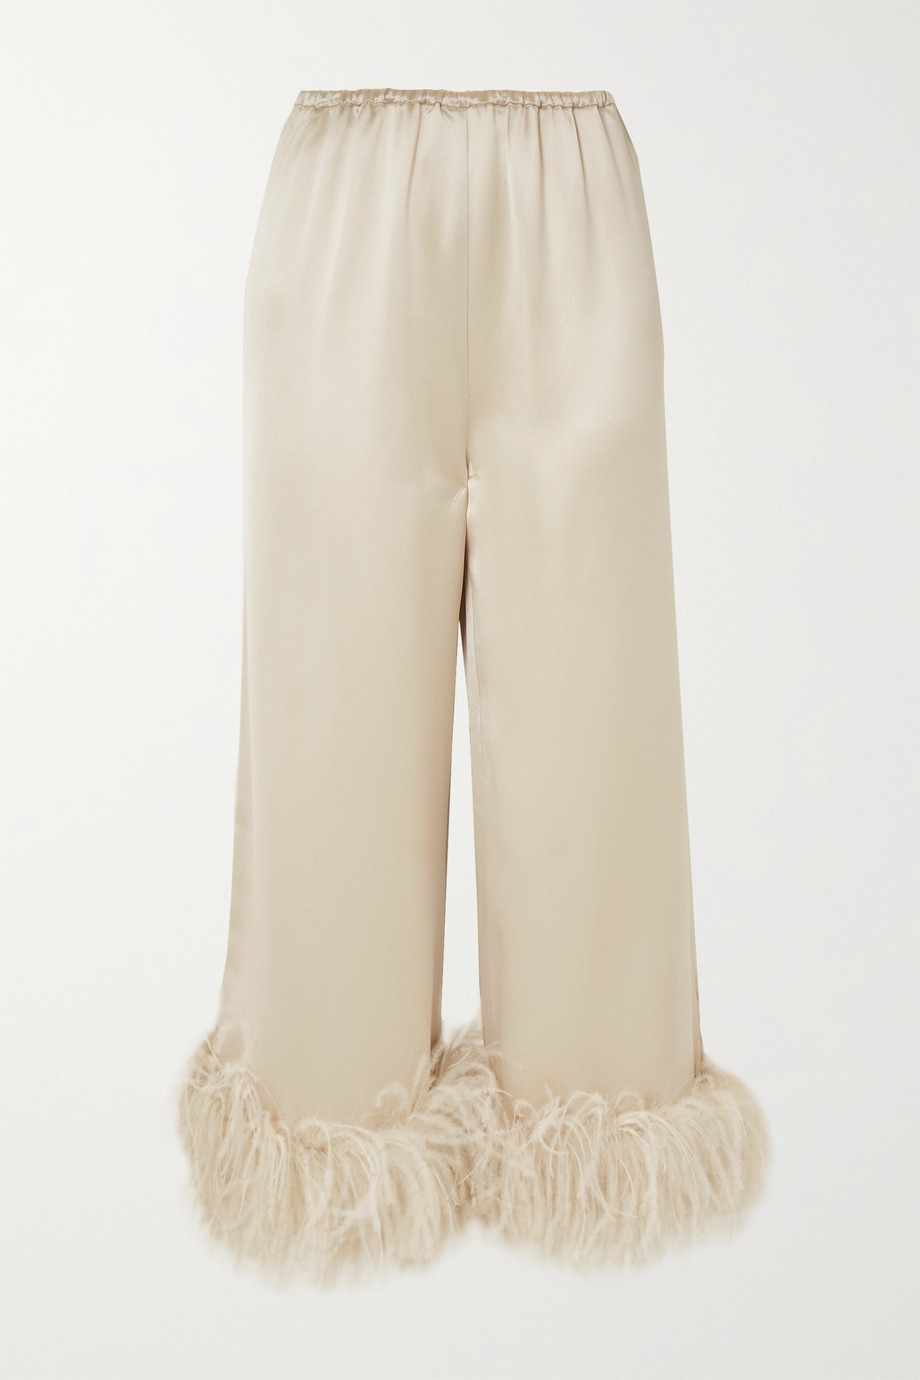 16ARLINGTON Mandrake feather-trimmed satin wide-leg pants